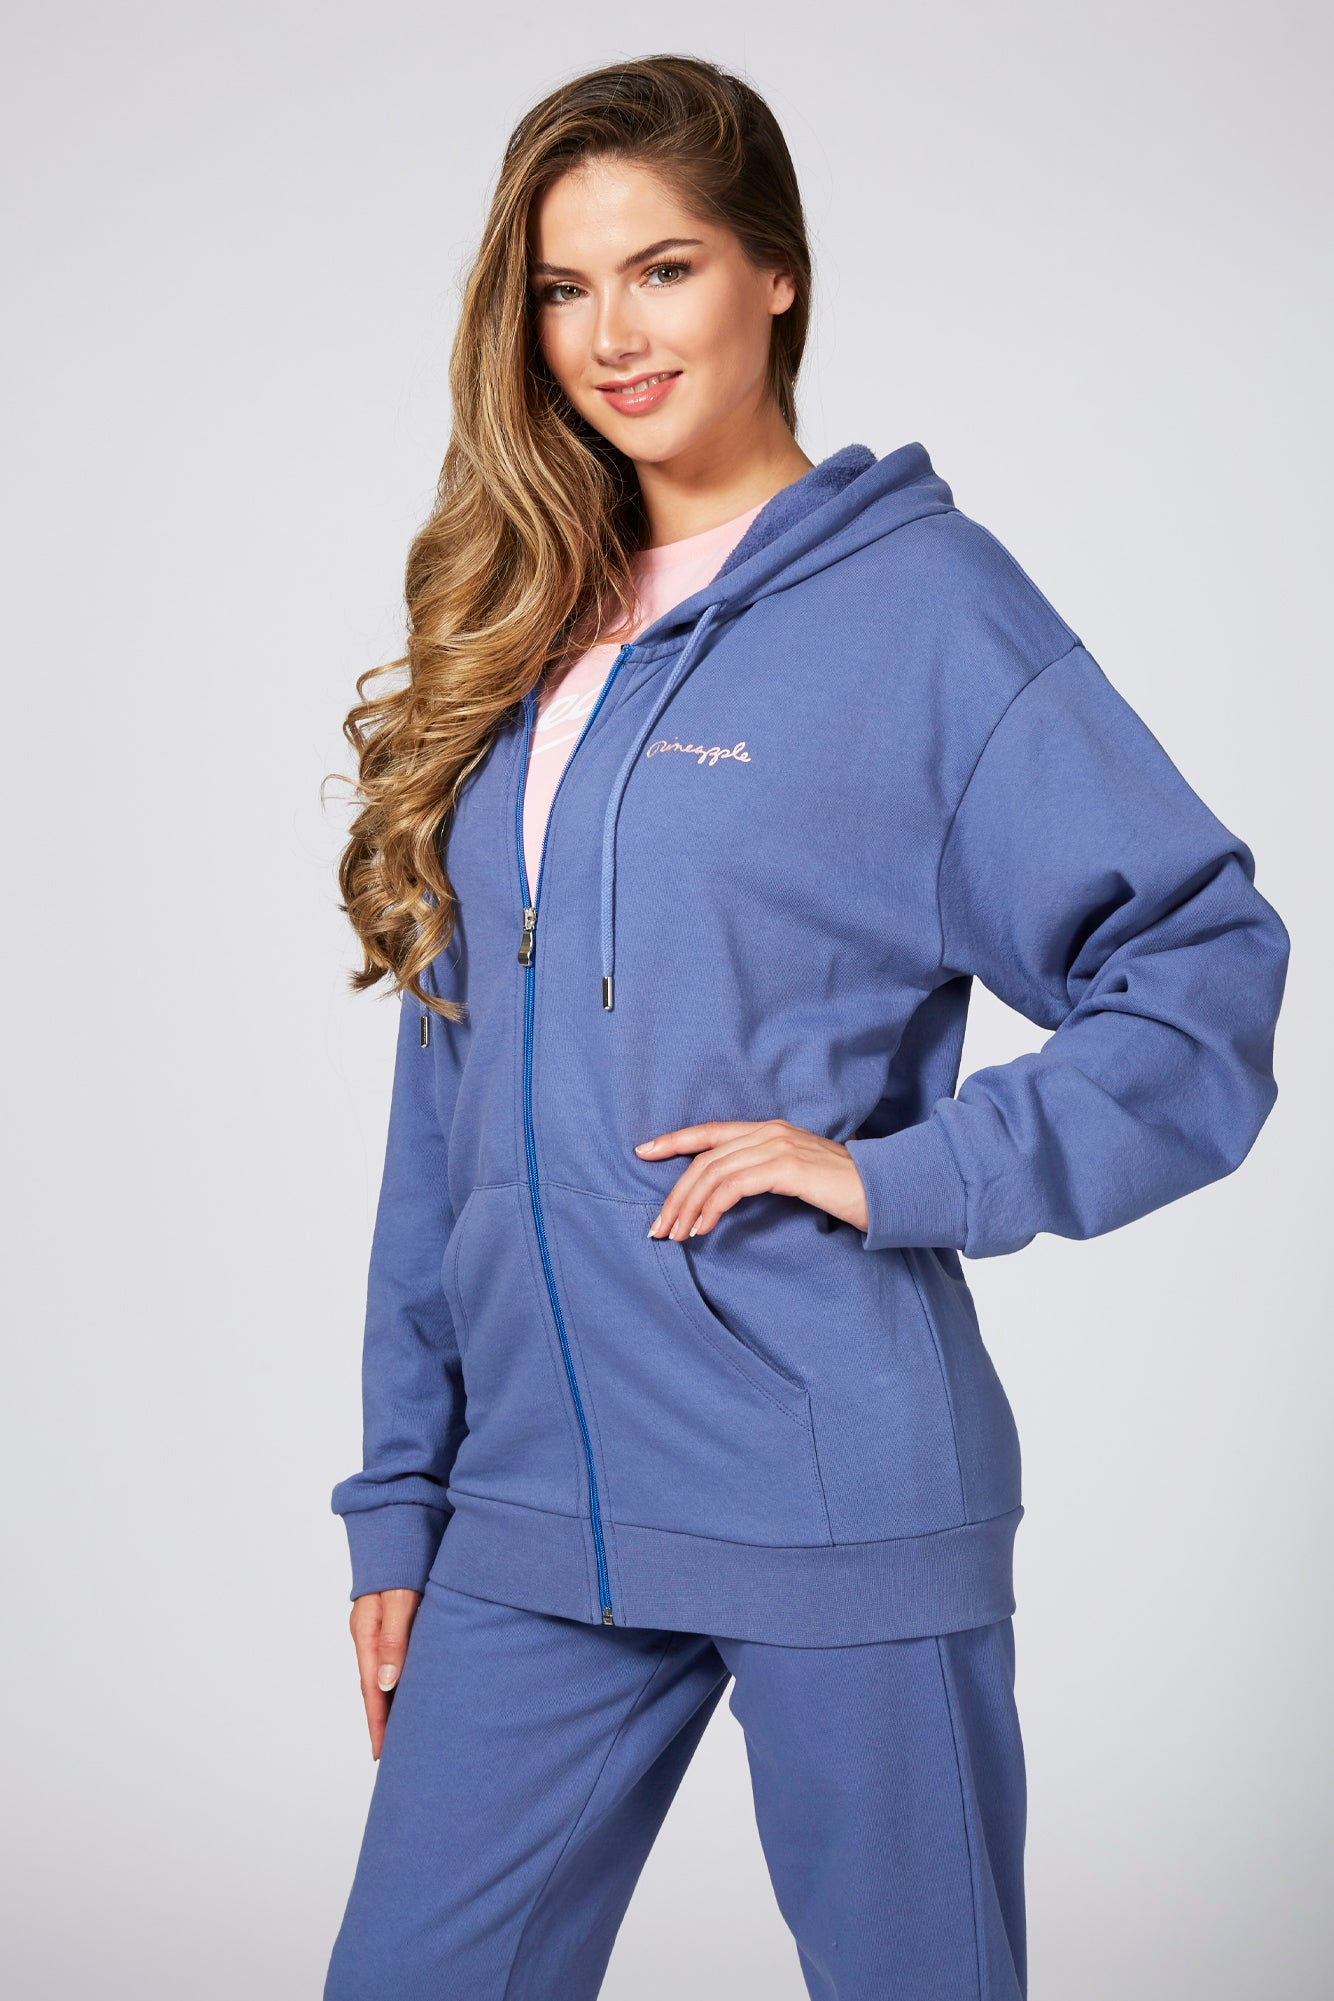 Pineapple Women's Blue Long Sleeve Zip Front Hoodie JH00150D1